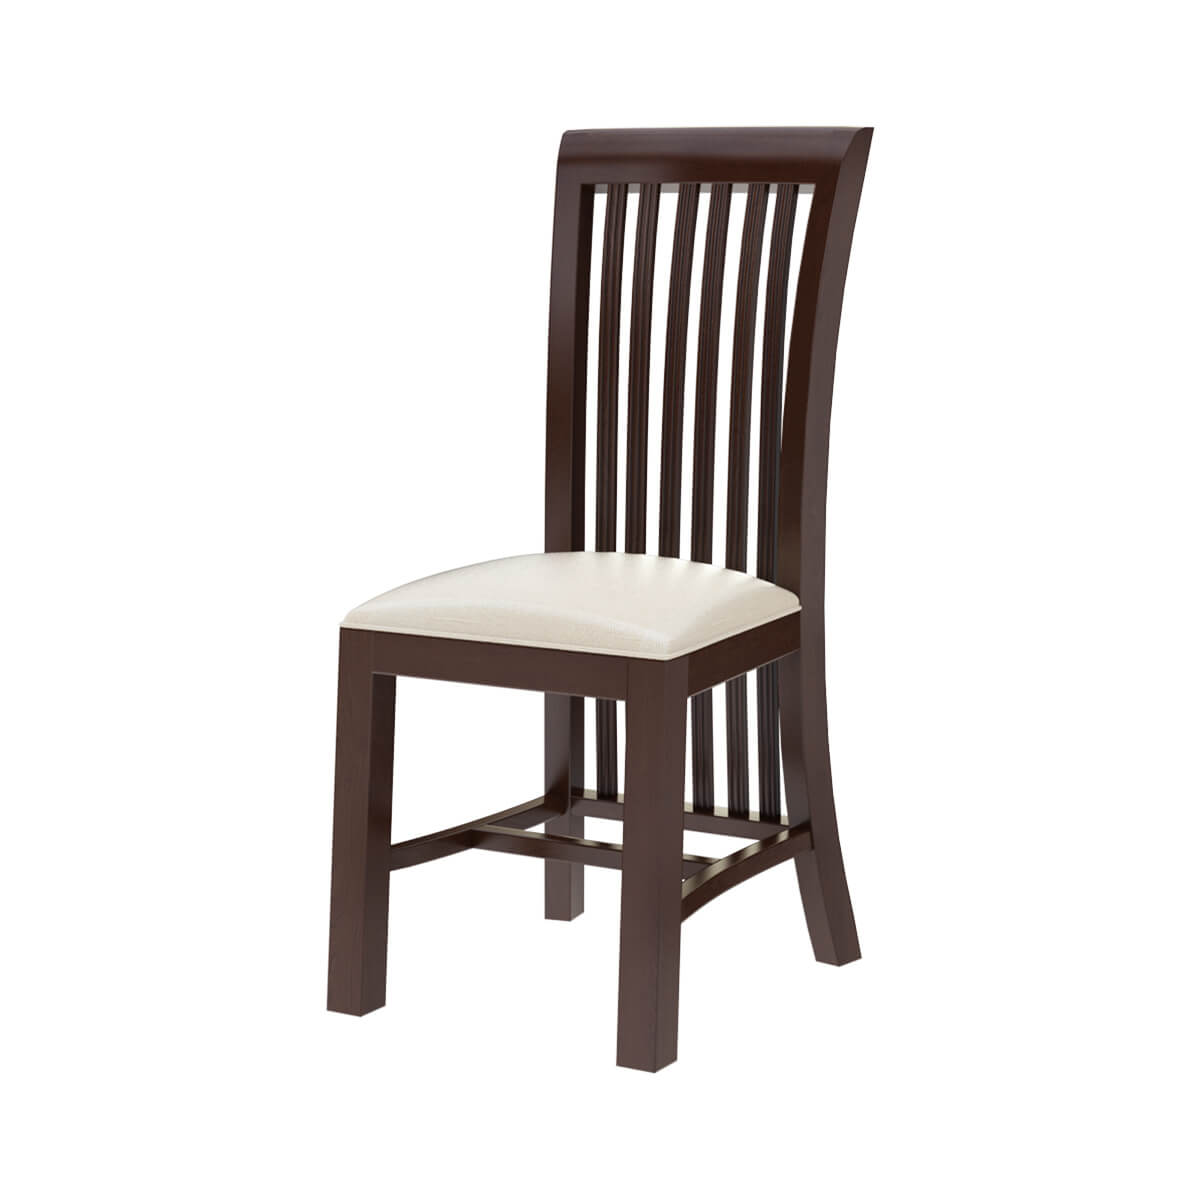 Tannersville Solid Mahogany Wood Upholstered Dining Chair